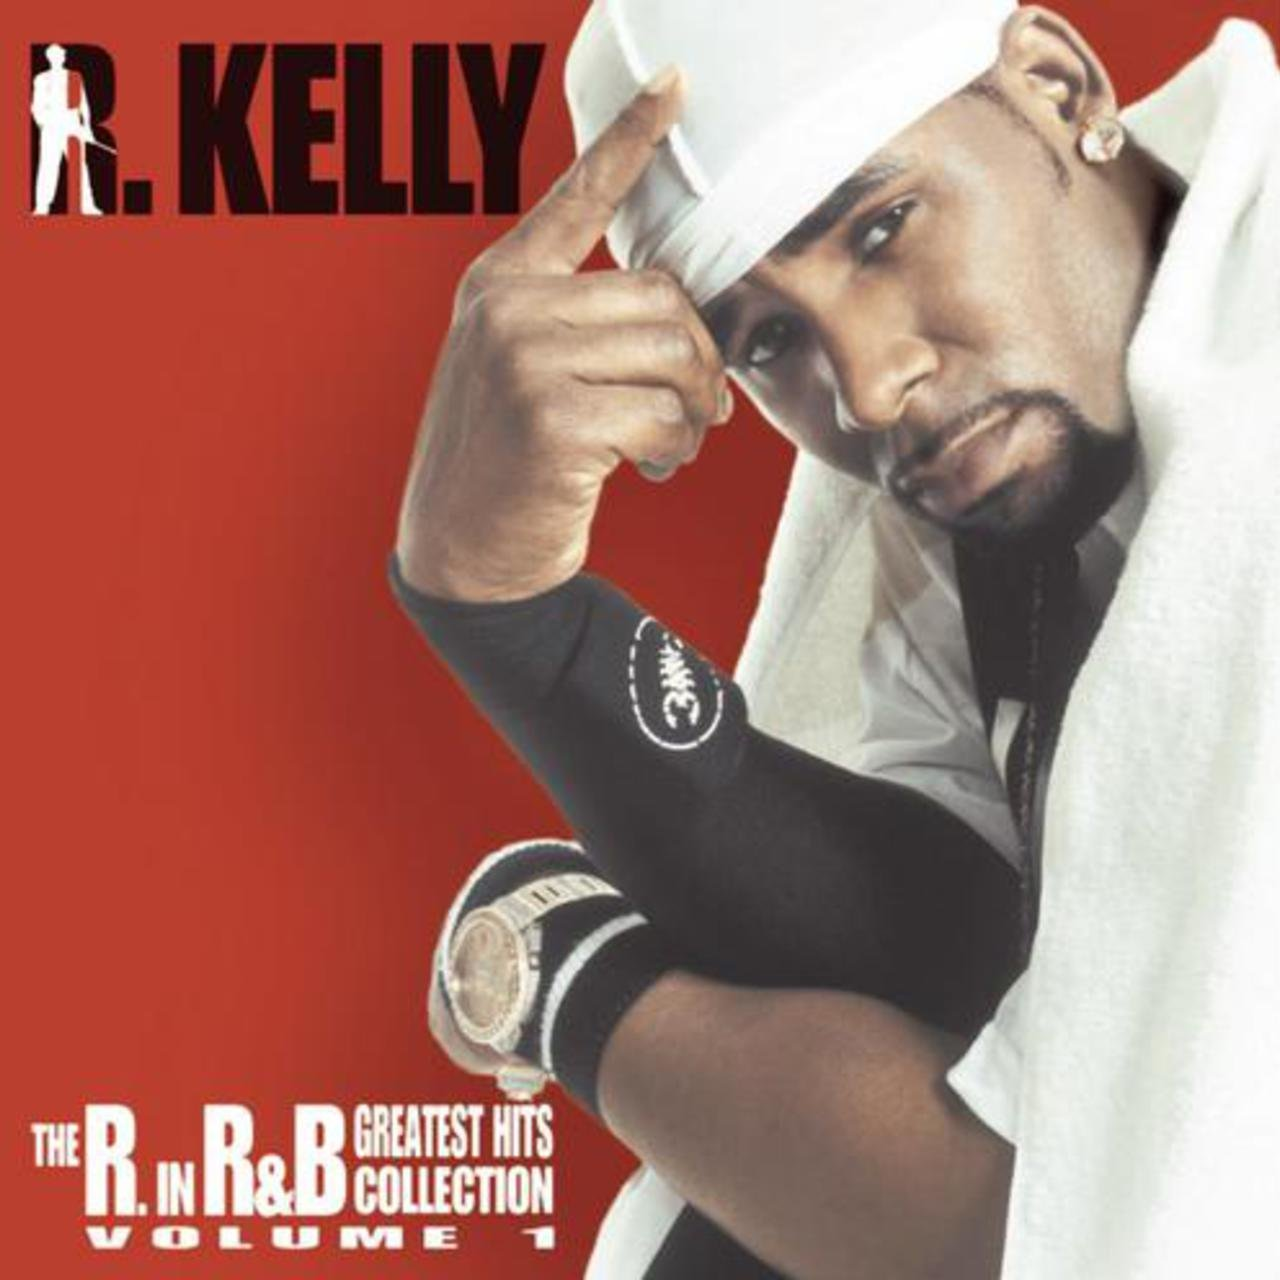 R. Kelly - The R. In R and B Collection Volume 1